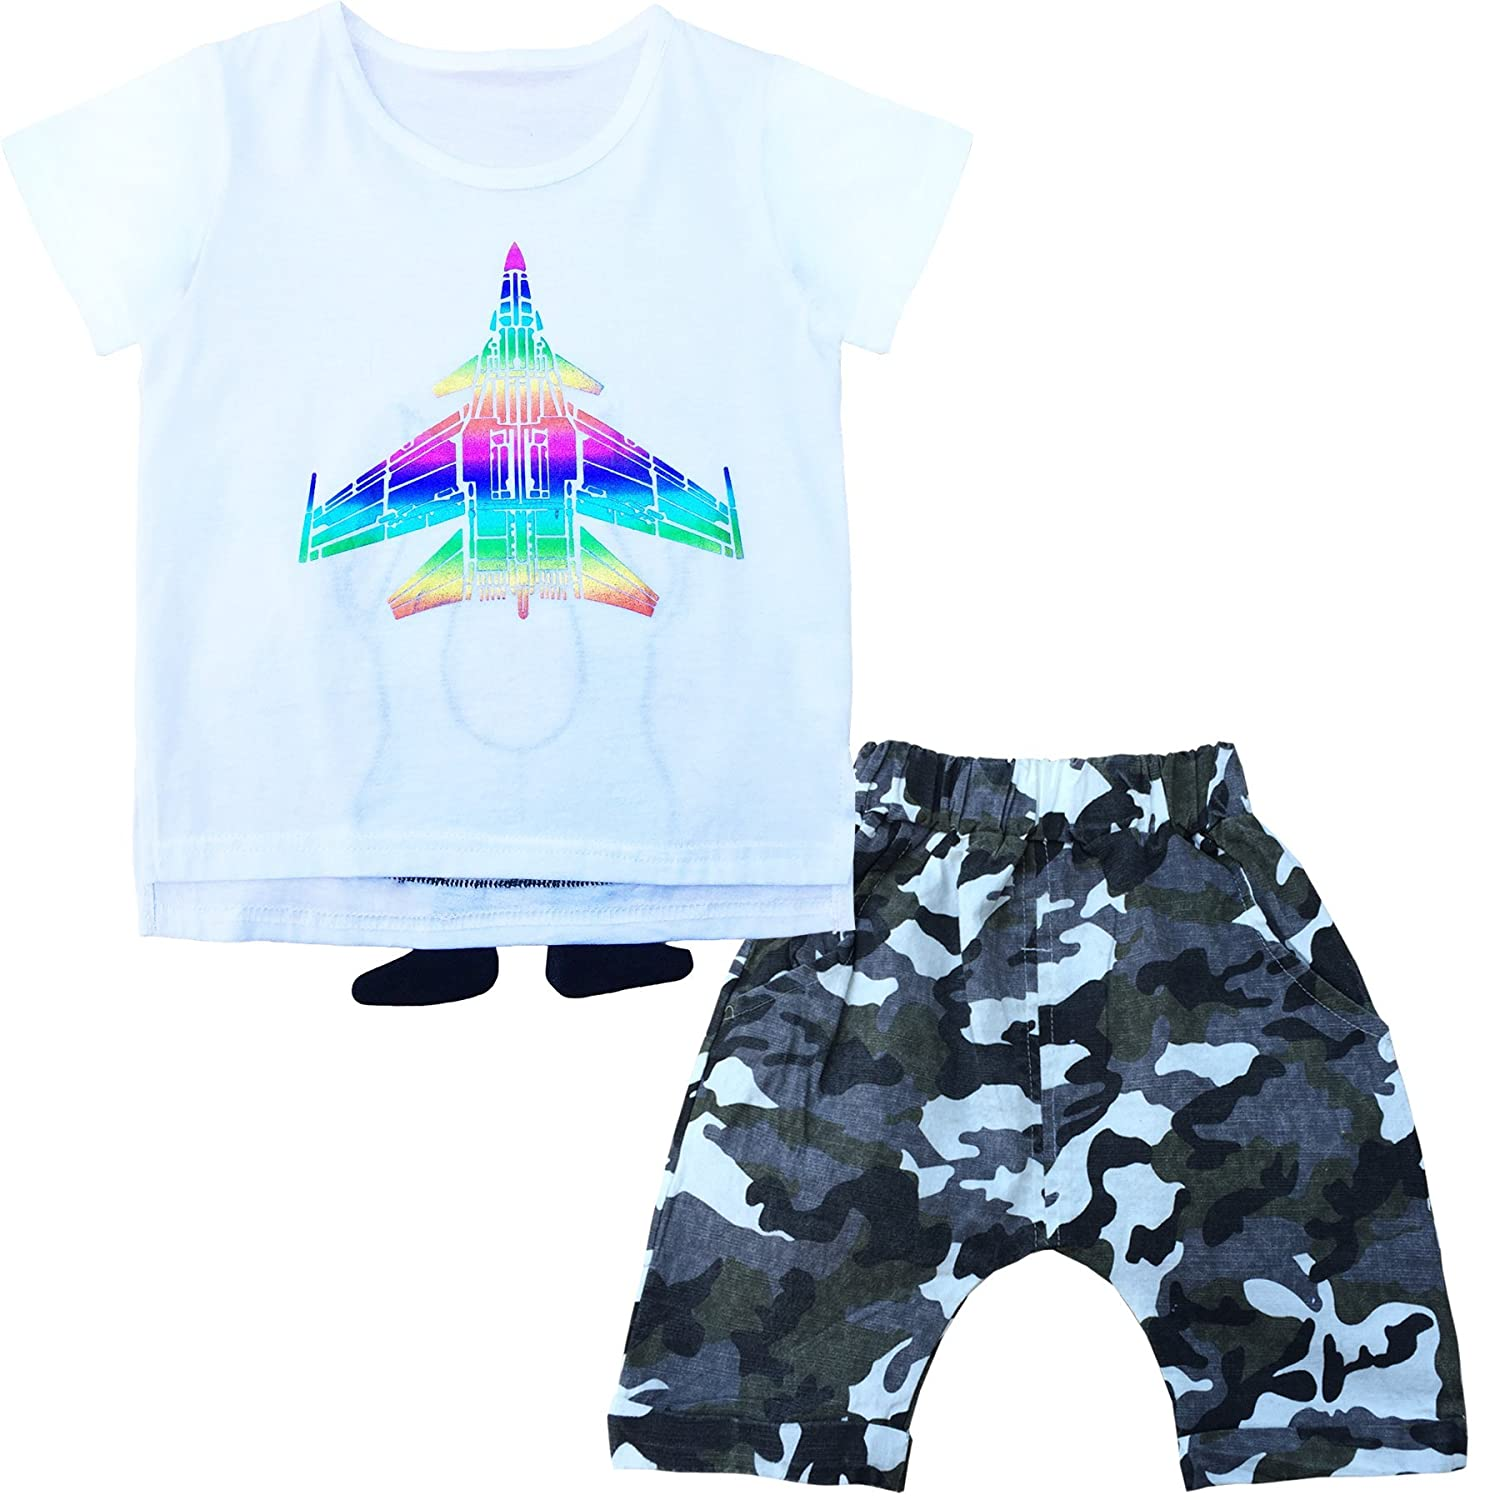 7feda84aa1 T shirt:Cotton 98%,Spandex 20% Pants:Cotton Blending Features:2 pieces set;Short  sleeve;Slim fit;Fashion aircraft graphic on the front and funny monster on  ...